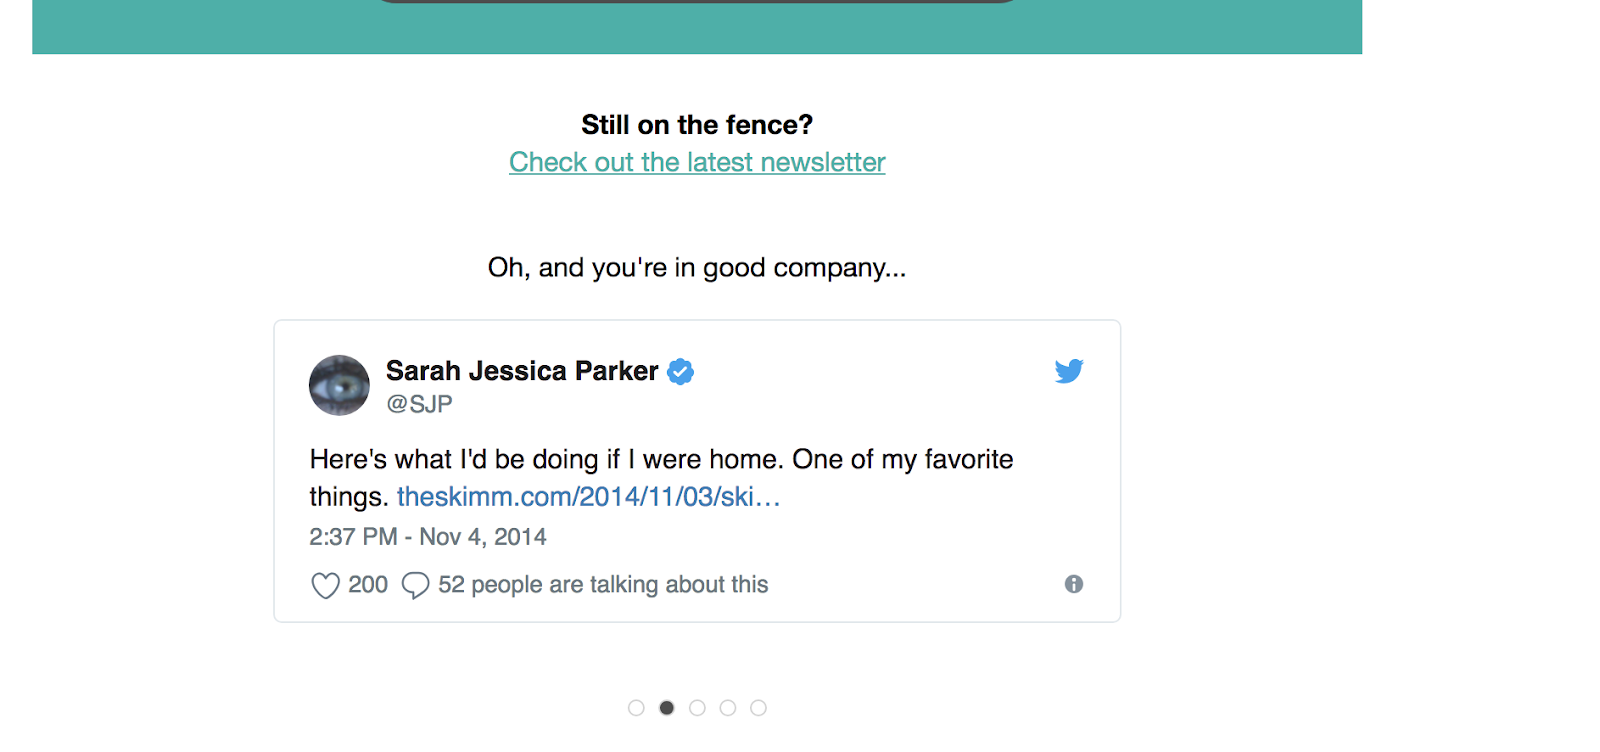 """theSkimm's next step that says """"still on the fence? checkout the latest newsletter. oh, and you're in good company..."""" along with a retweet from sarah jessica parker confirming that she reads theskimm"""